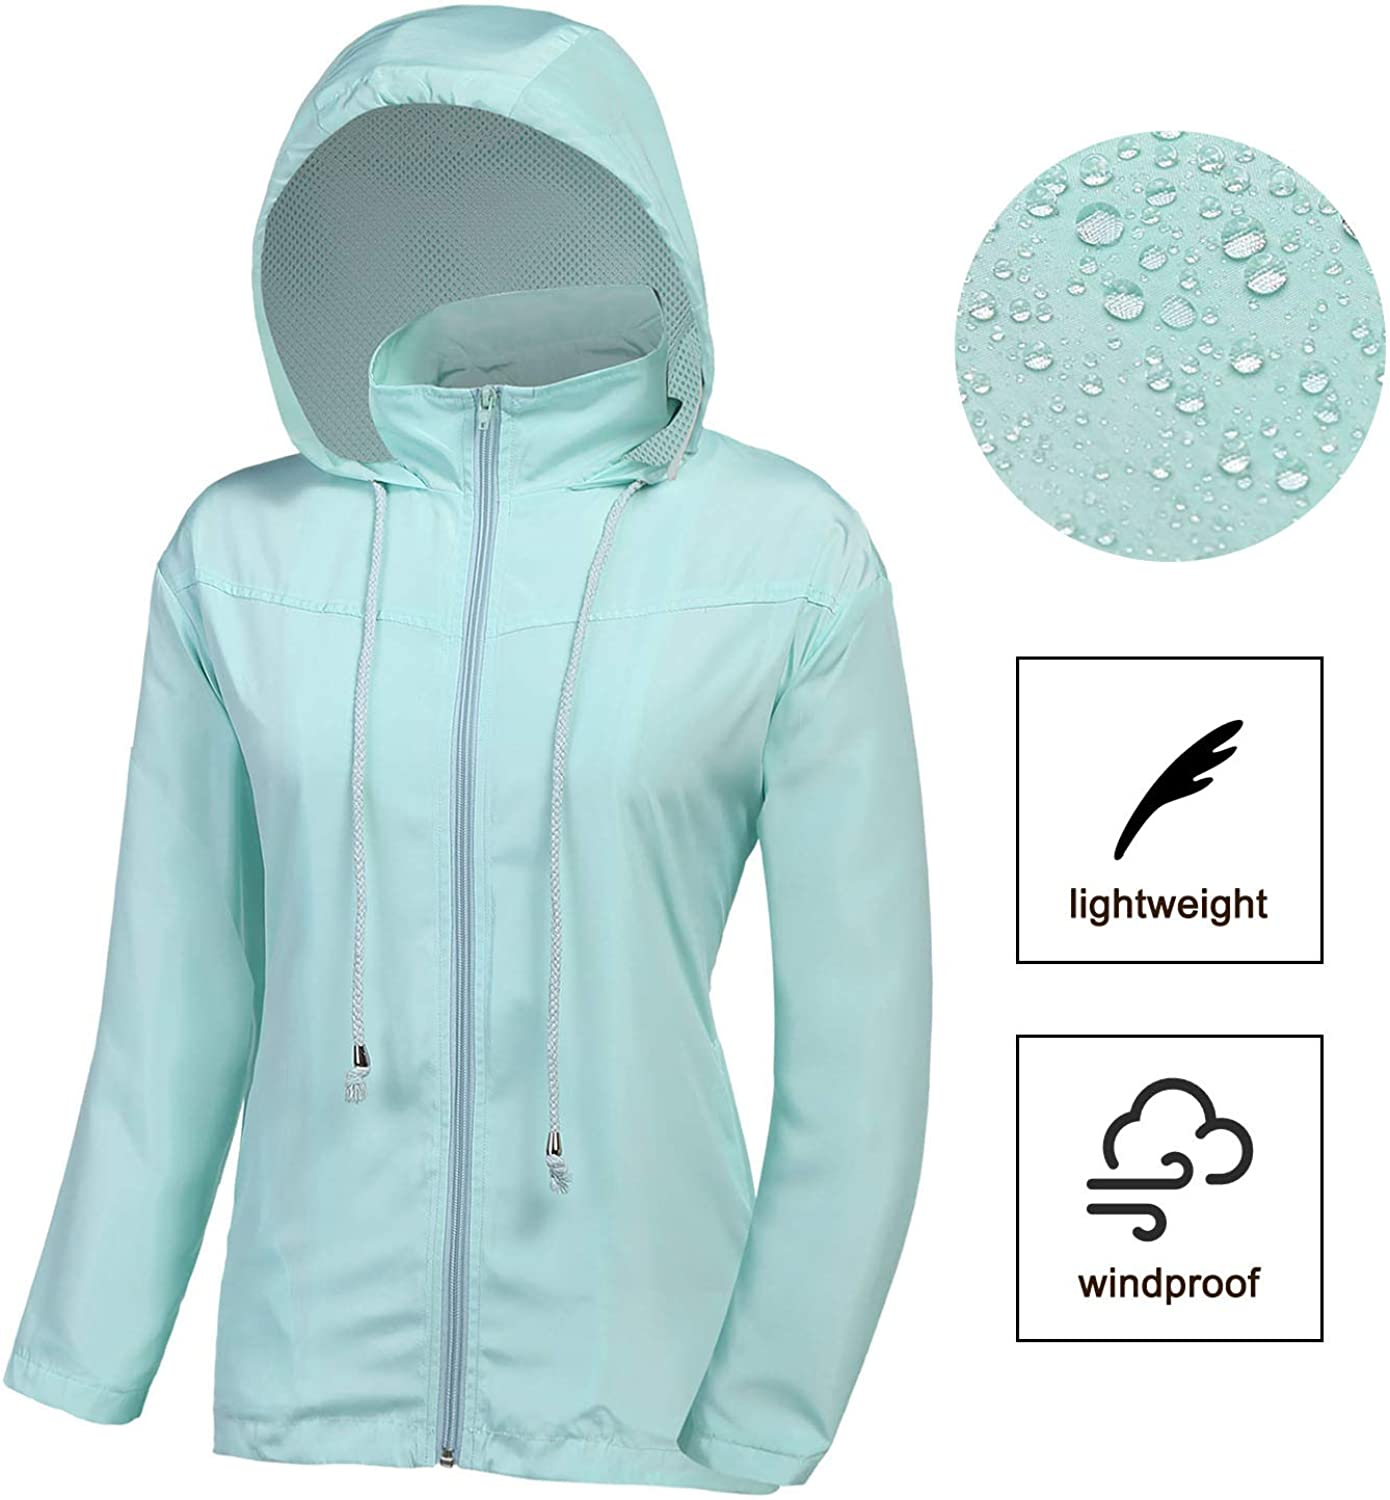 Womens Waterproof Lightweight Raincoats Jacket Rain Windbreaker Windproof for Cycling Walking Travelling Active Outdoor